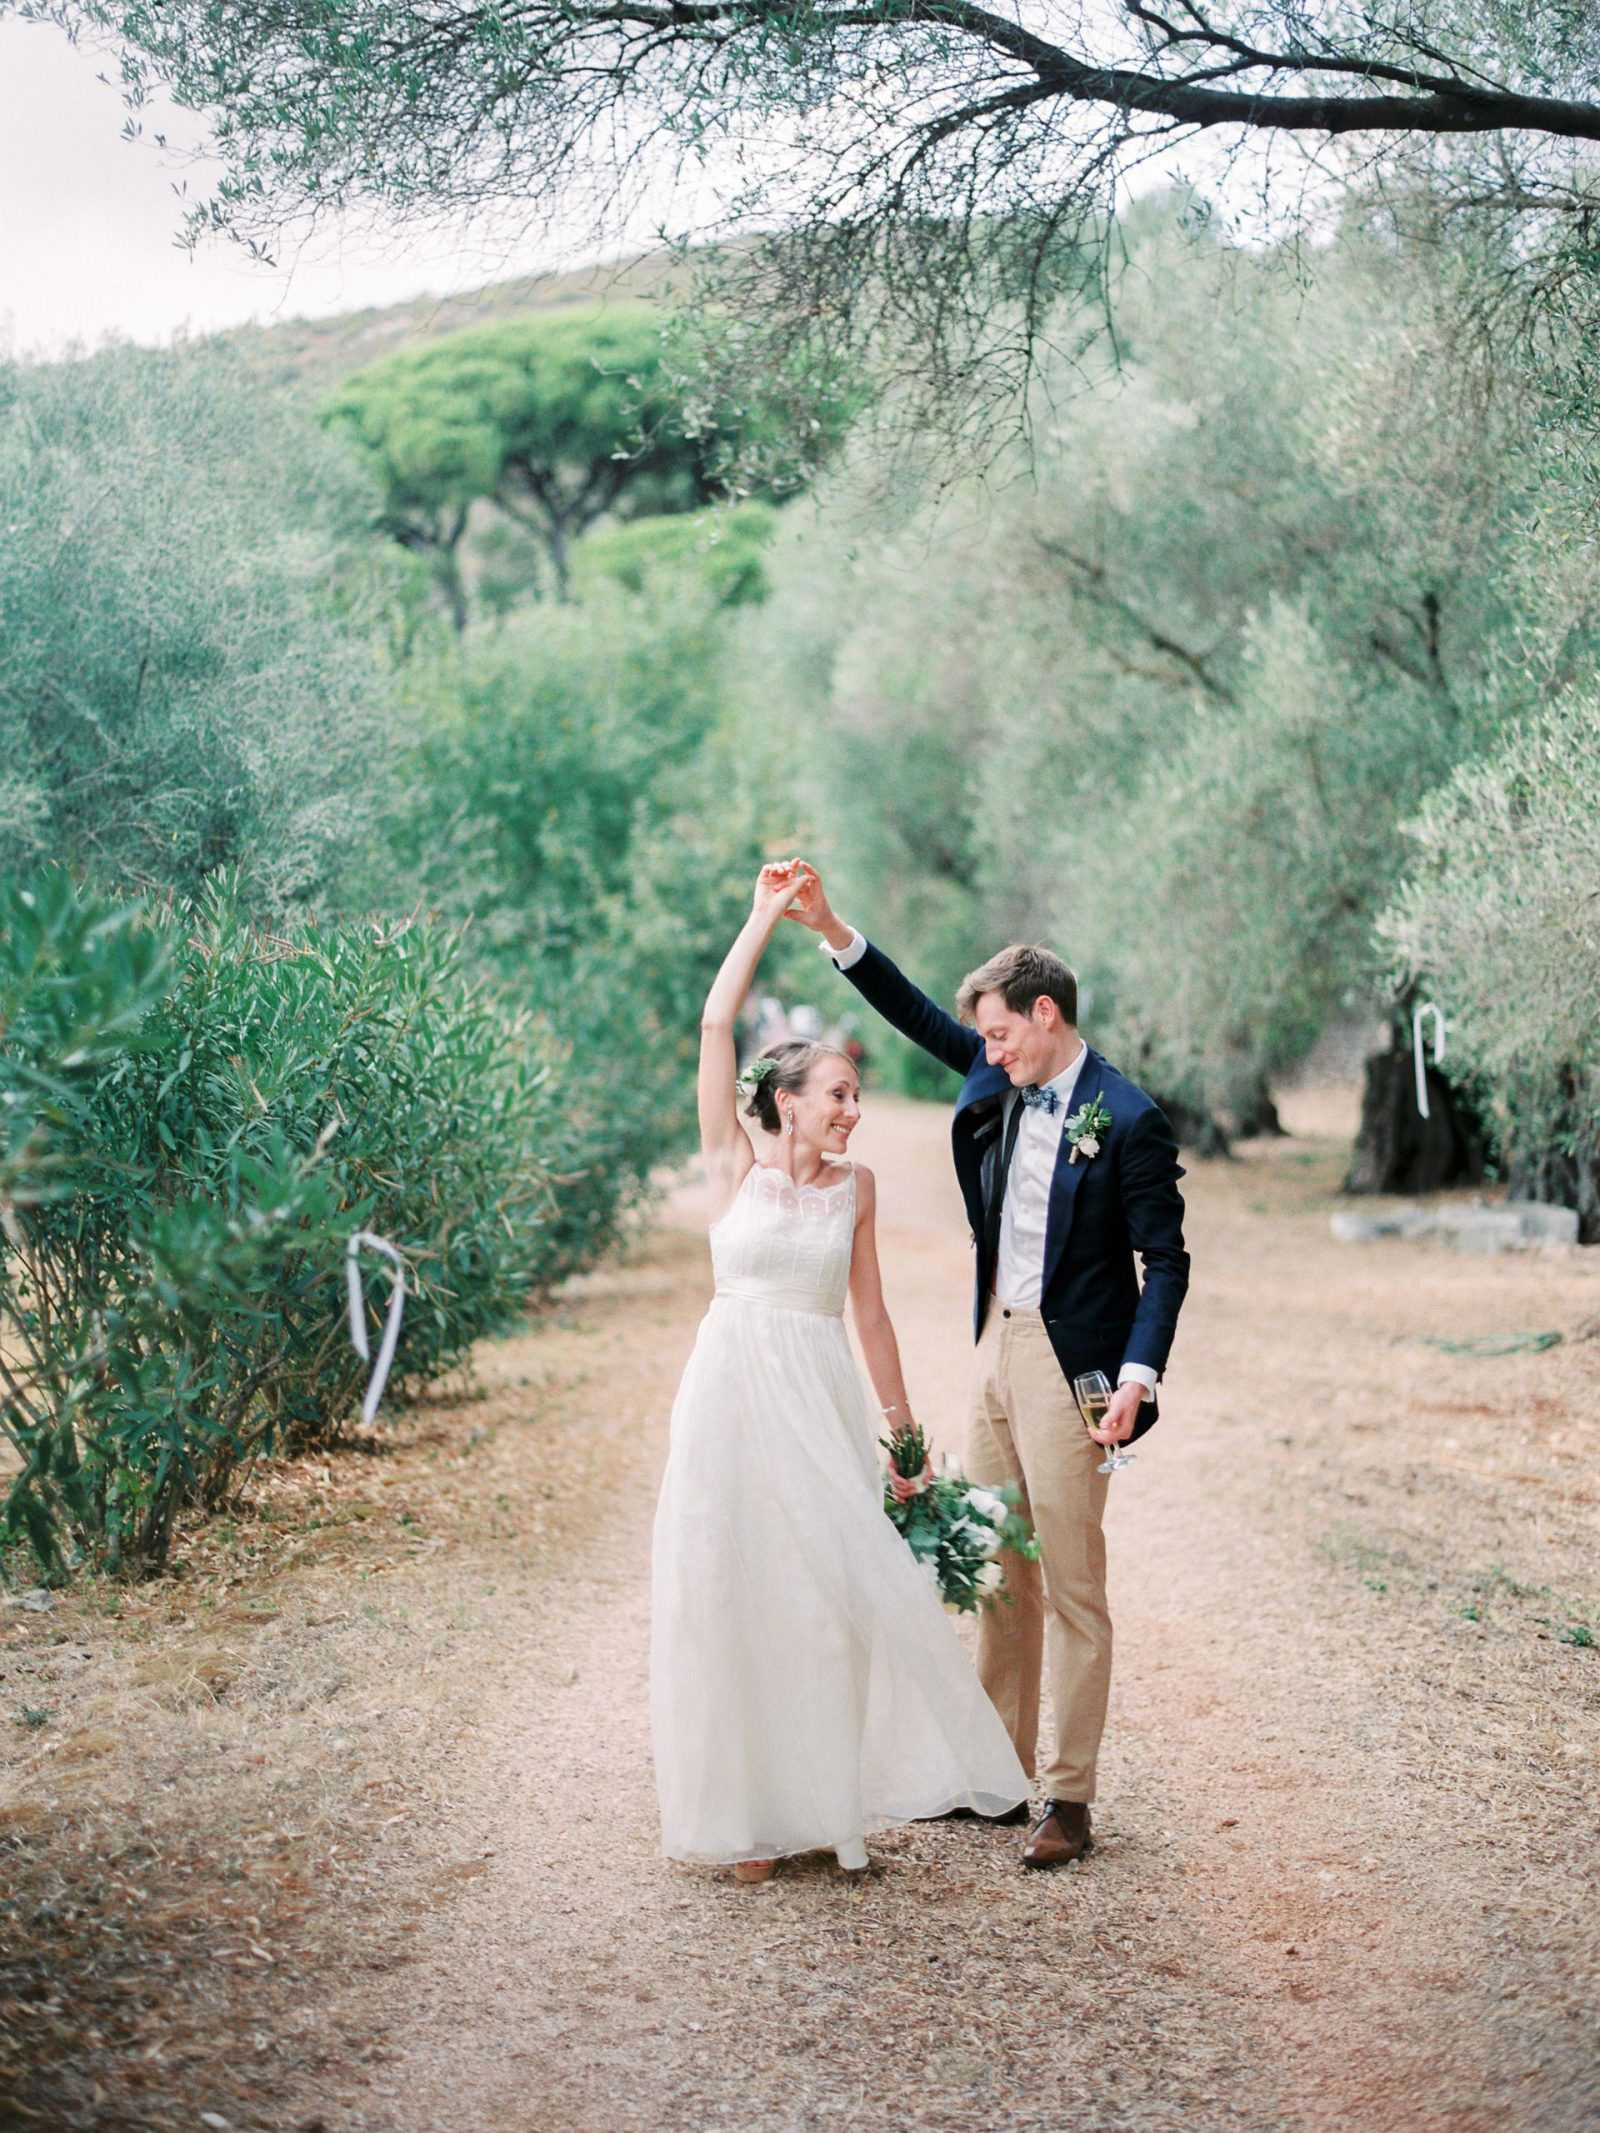 Bride and Groom dance in the Olive Groves of Kefalonia Island Greece